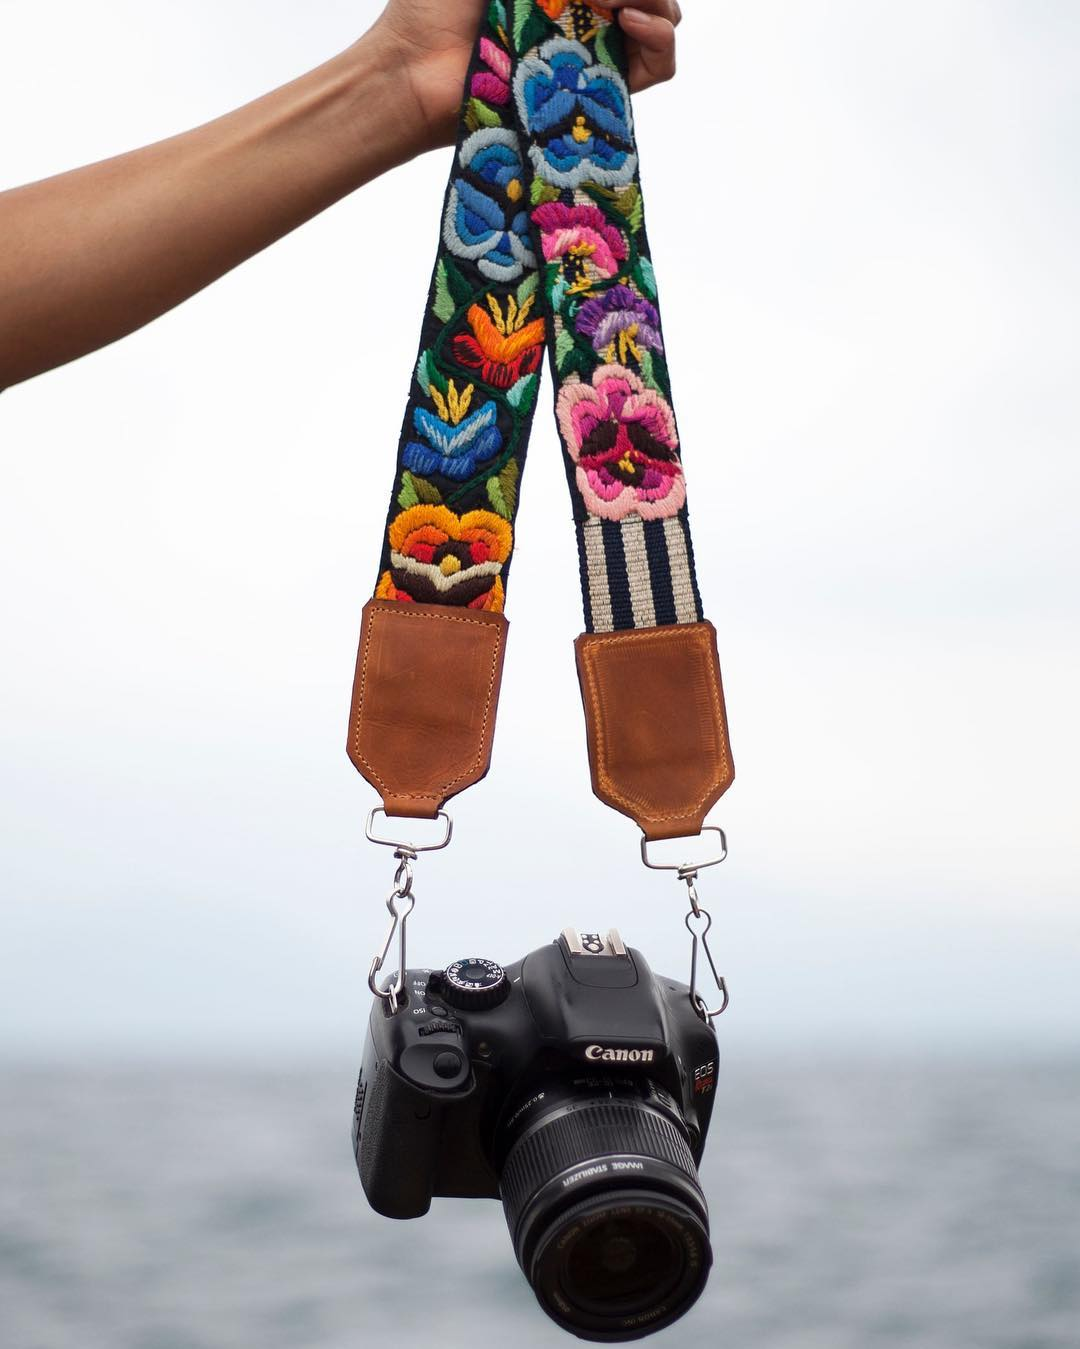 Ethical, handmade camera bag strap from Guatemala - Hiptipico